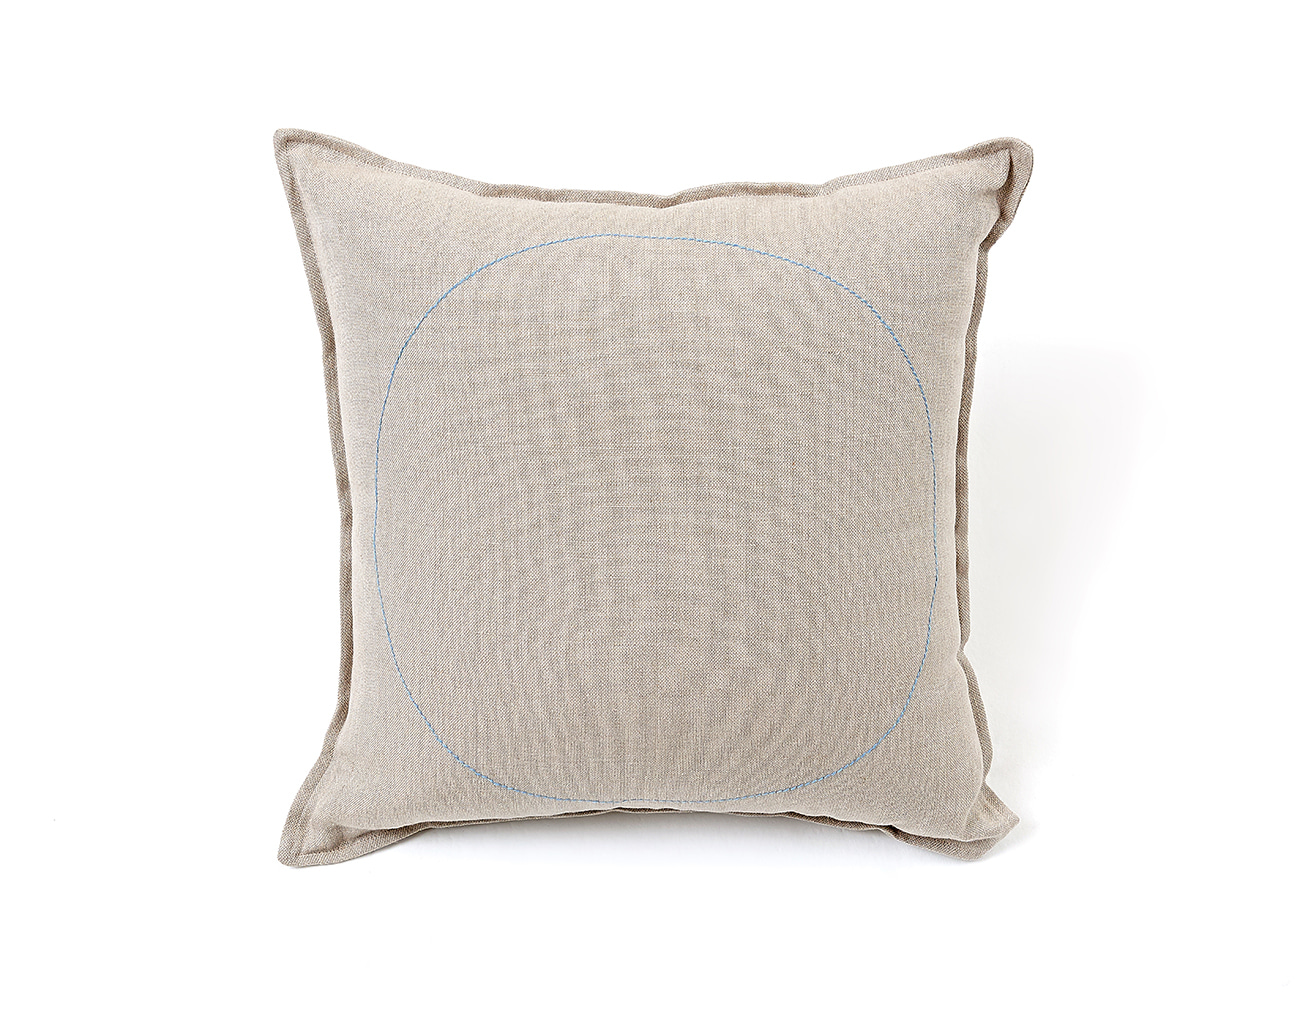 LINEN STITCH CUSHION_LIGHT BLUE CRICLE